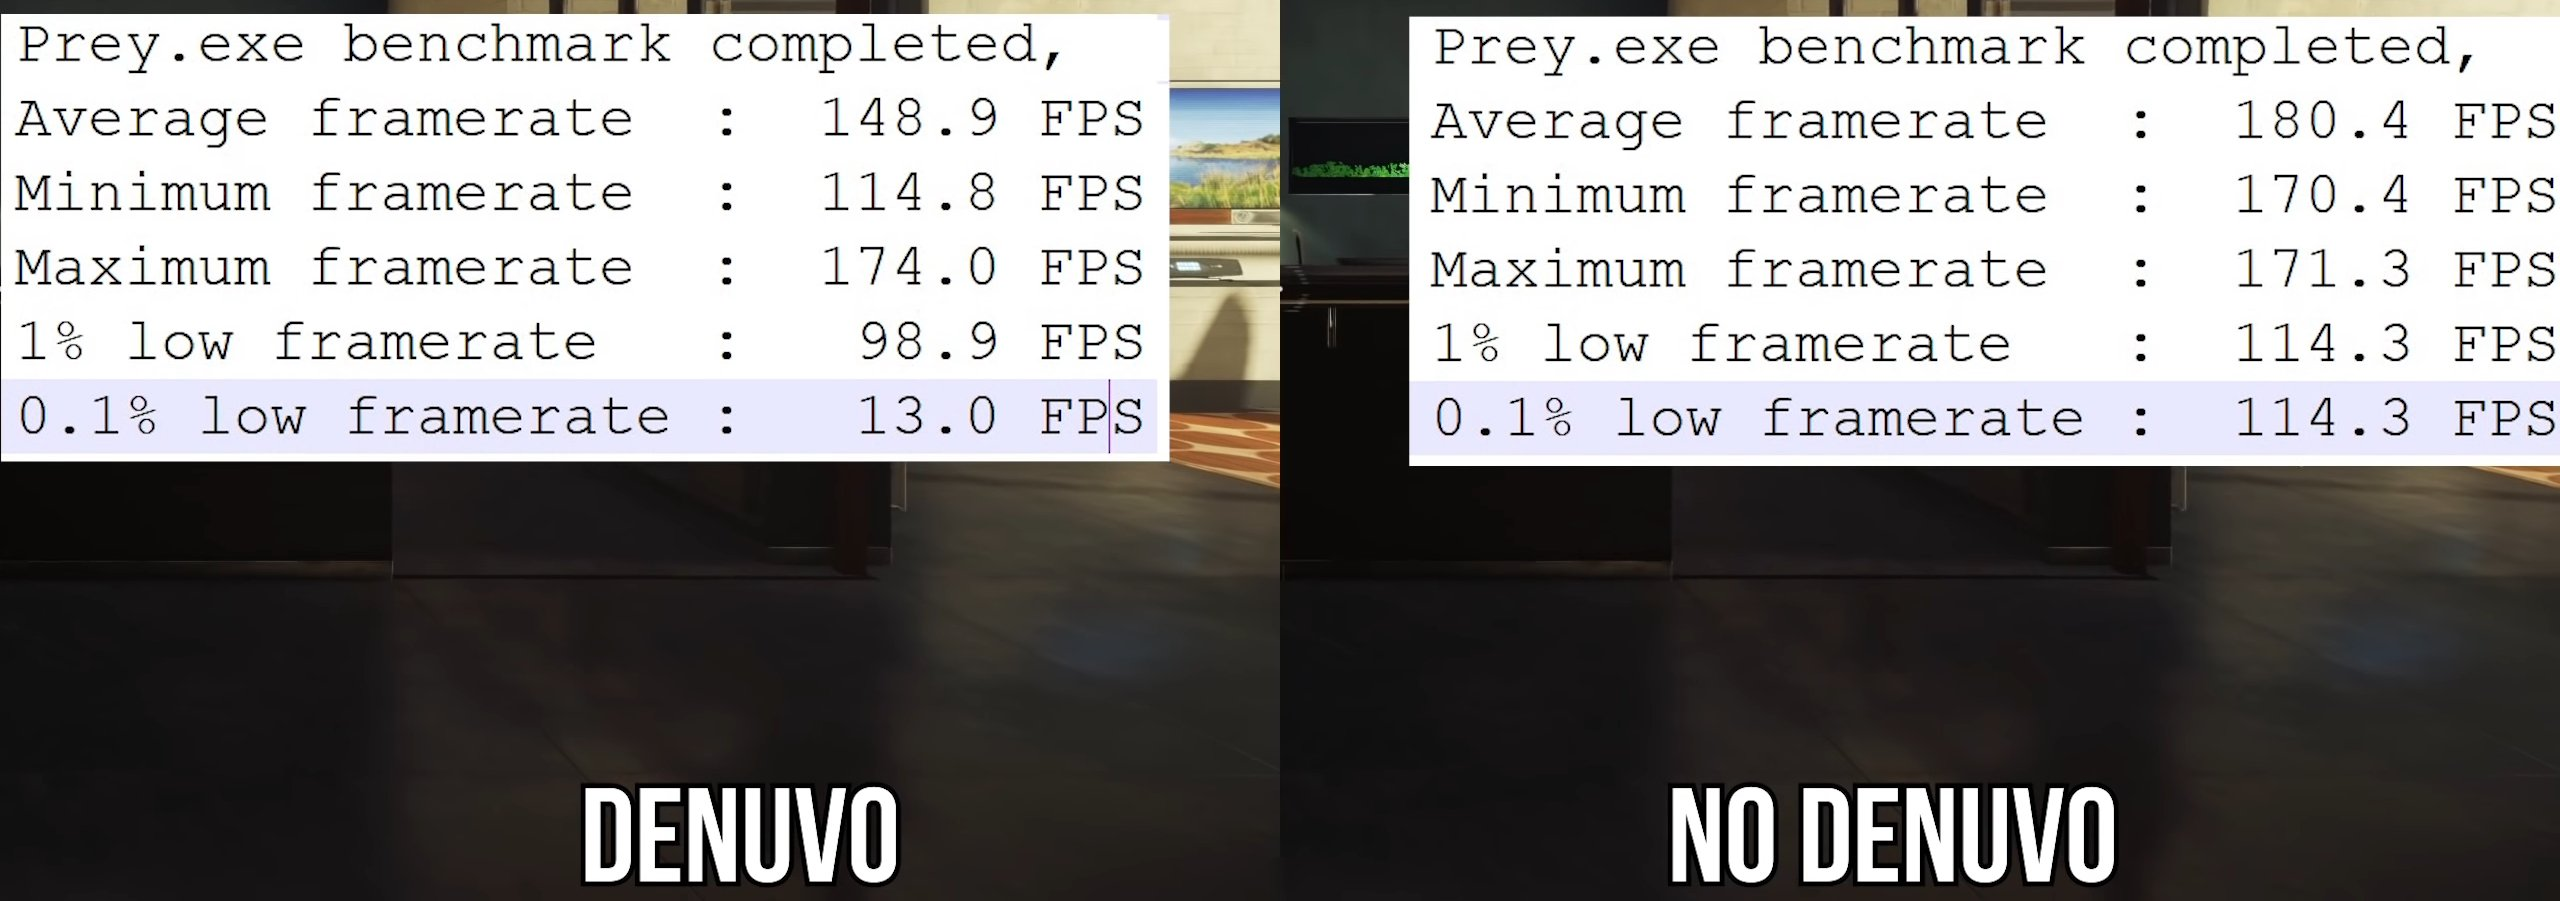 125434-Did%20Denuvo%20slow%20performance